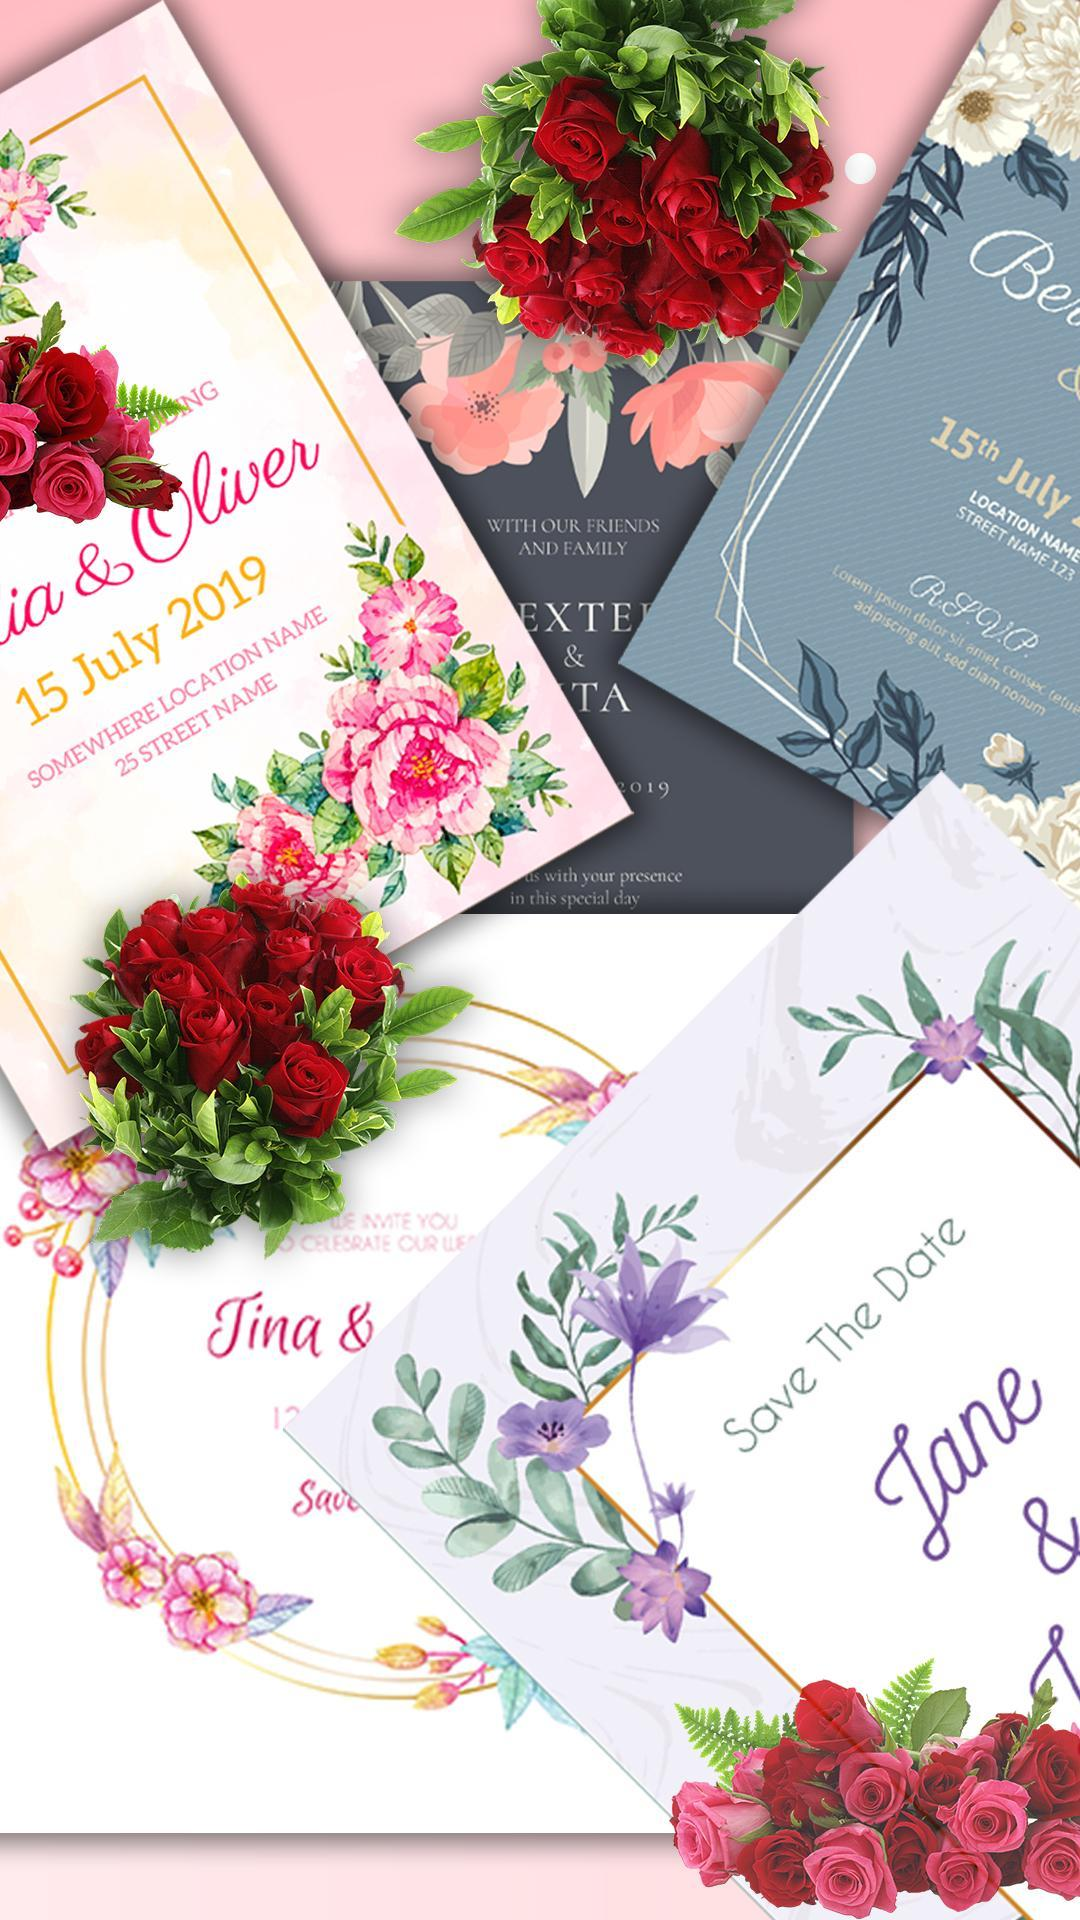 Stylish Wedding Invitation Card Maker 2019 For Android Apk